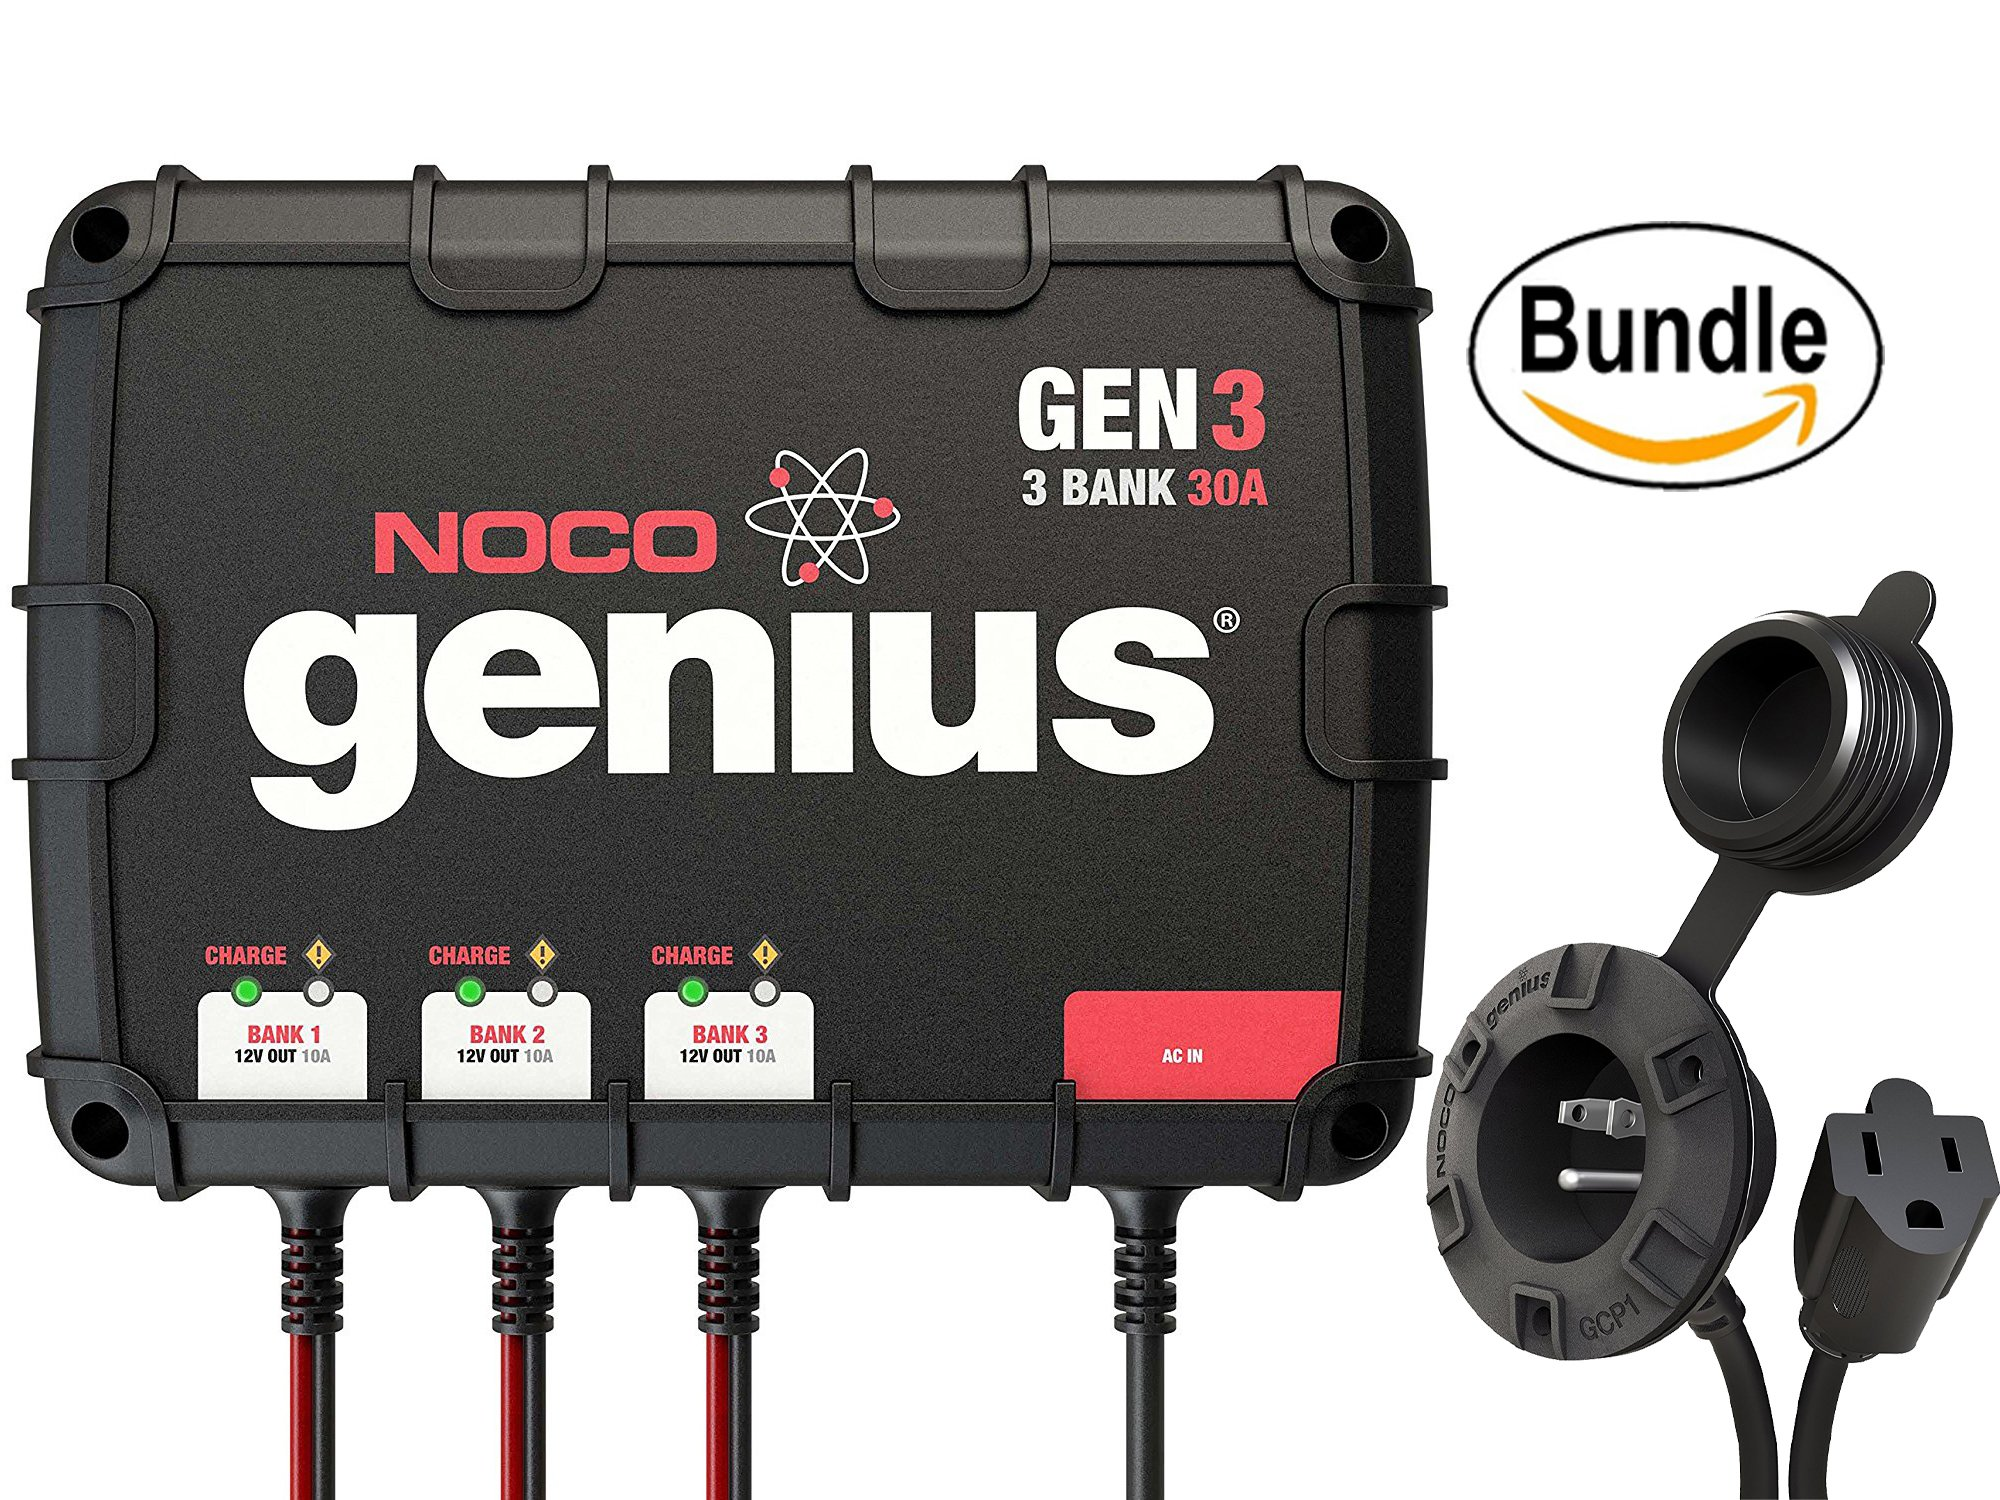 NOCO Genius GEN3 30 Amp 3-Bank Waterproof Smart On-Board Battery Charger & NOCO Genius GCP1 Black 13 Amp 125V AC Port Plug (Bundle) by NOCO Genius Bundle